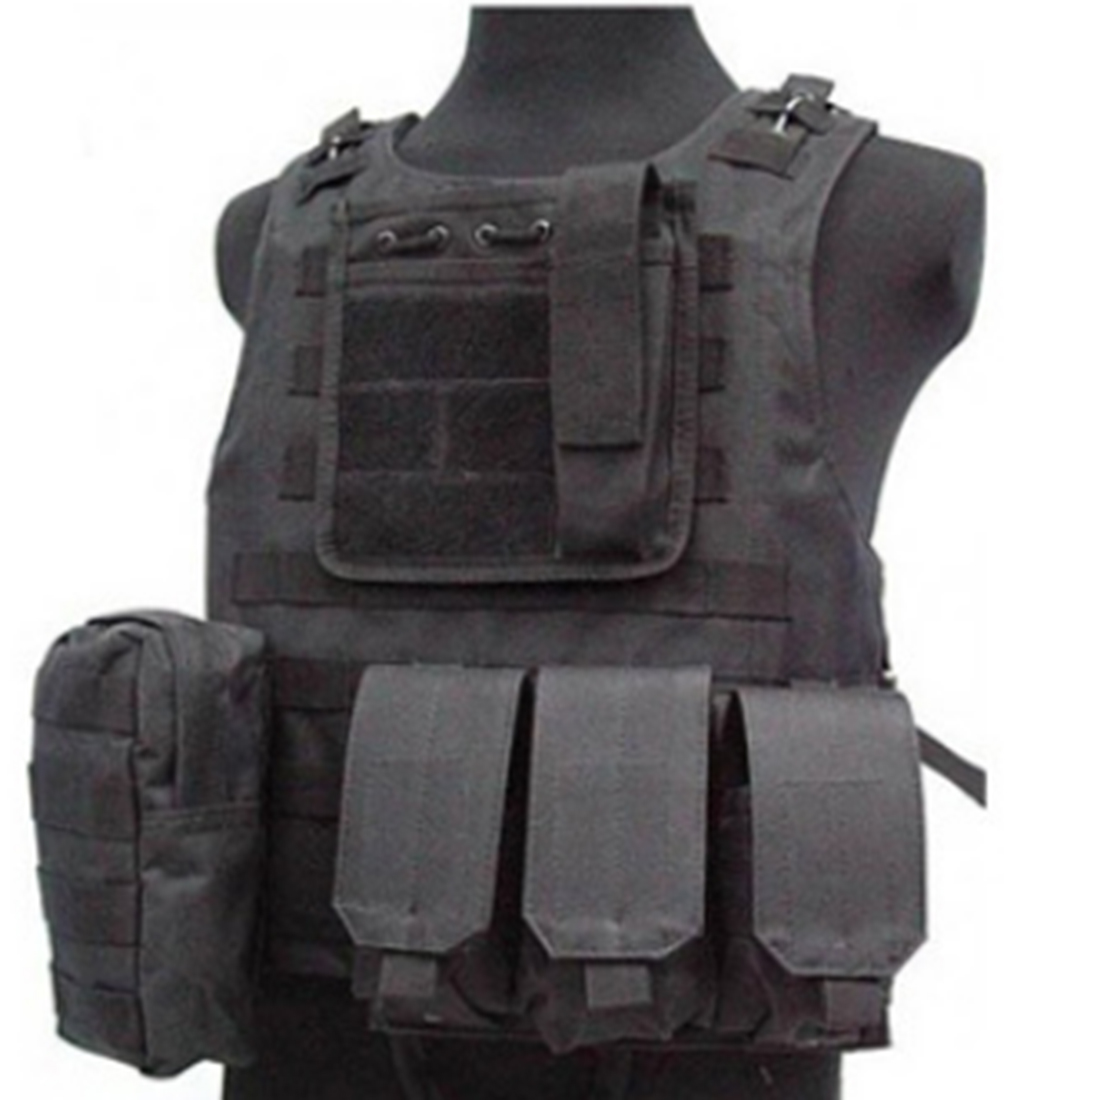 Tactical Vest Men Waistcoat Combat Molle Military Multi Pockets Vest for Camping Hunting CS Wargame Airsoft Paintball Airsoft colete tatico balistico swatt paintball airsoft 15%off cs airsoft game tactical military combat traning protective security vest